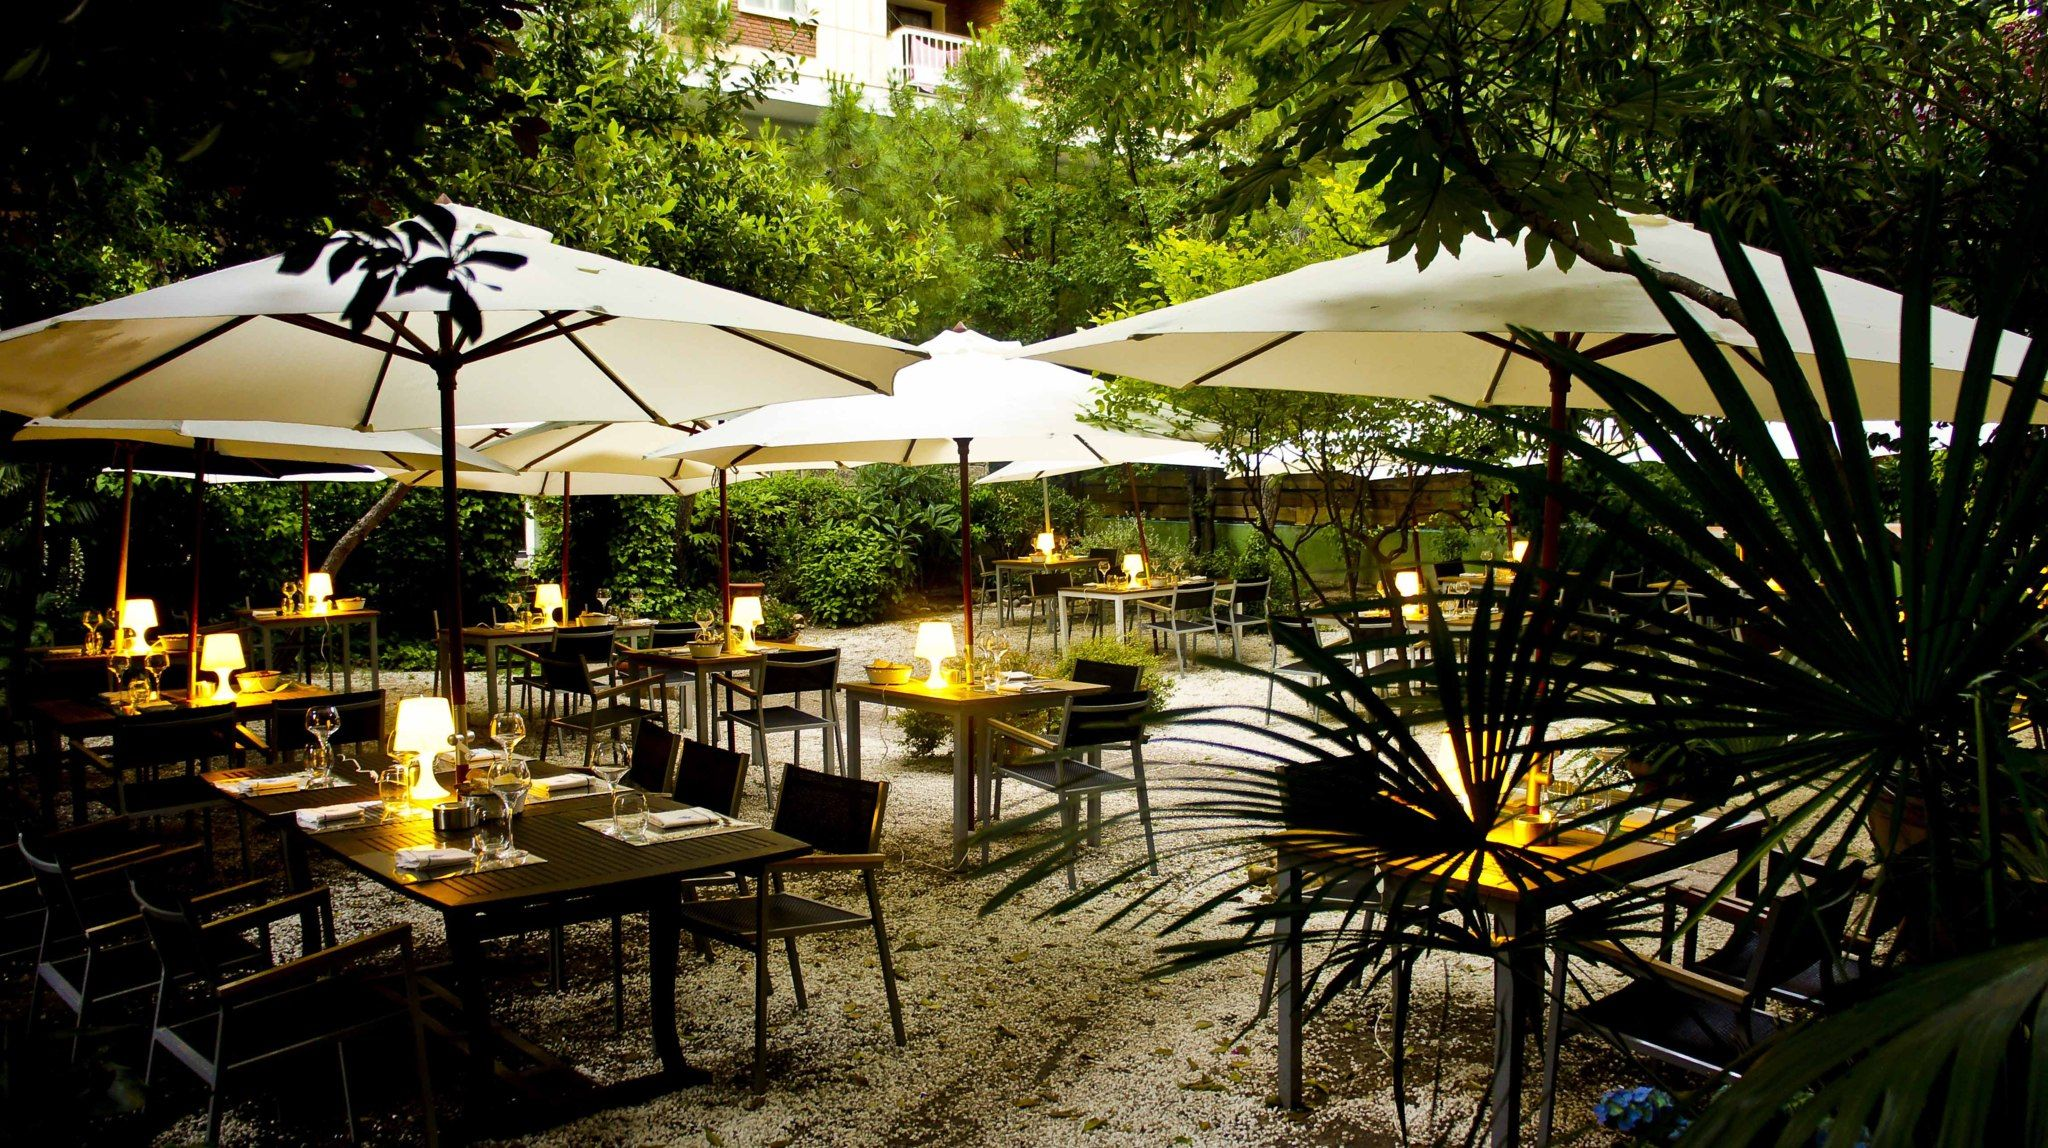 Los Mejores Restaurantes Con Terraza De Madrid Outdoor Decor Patio Umbrella Patio